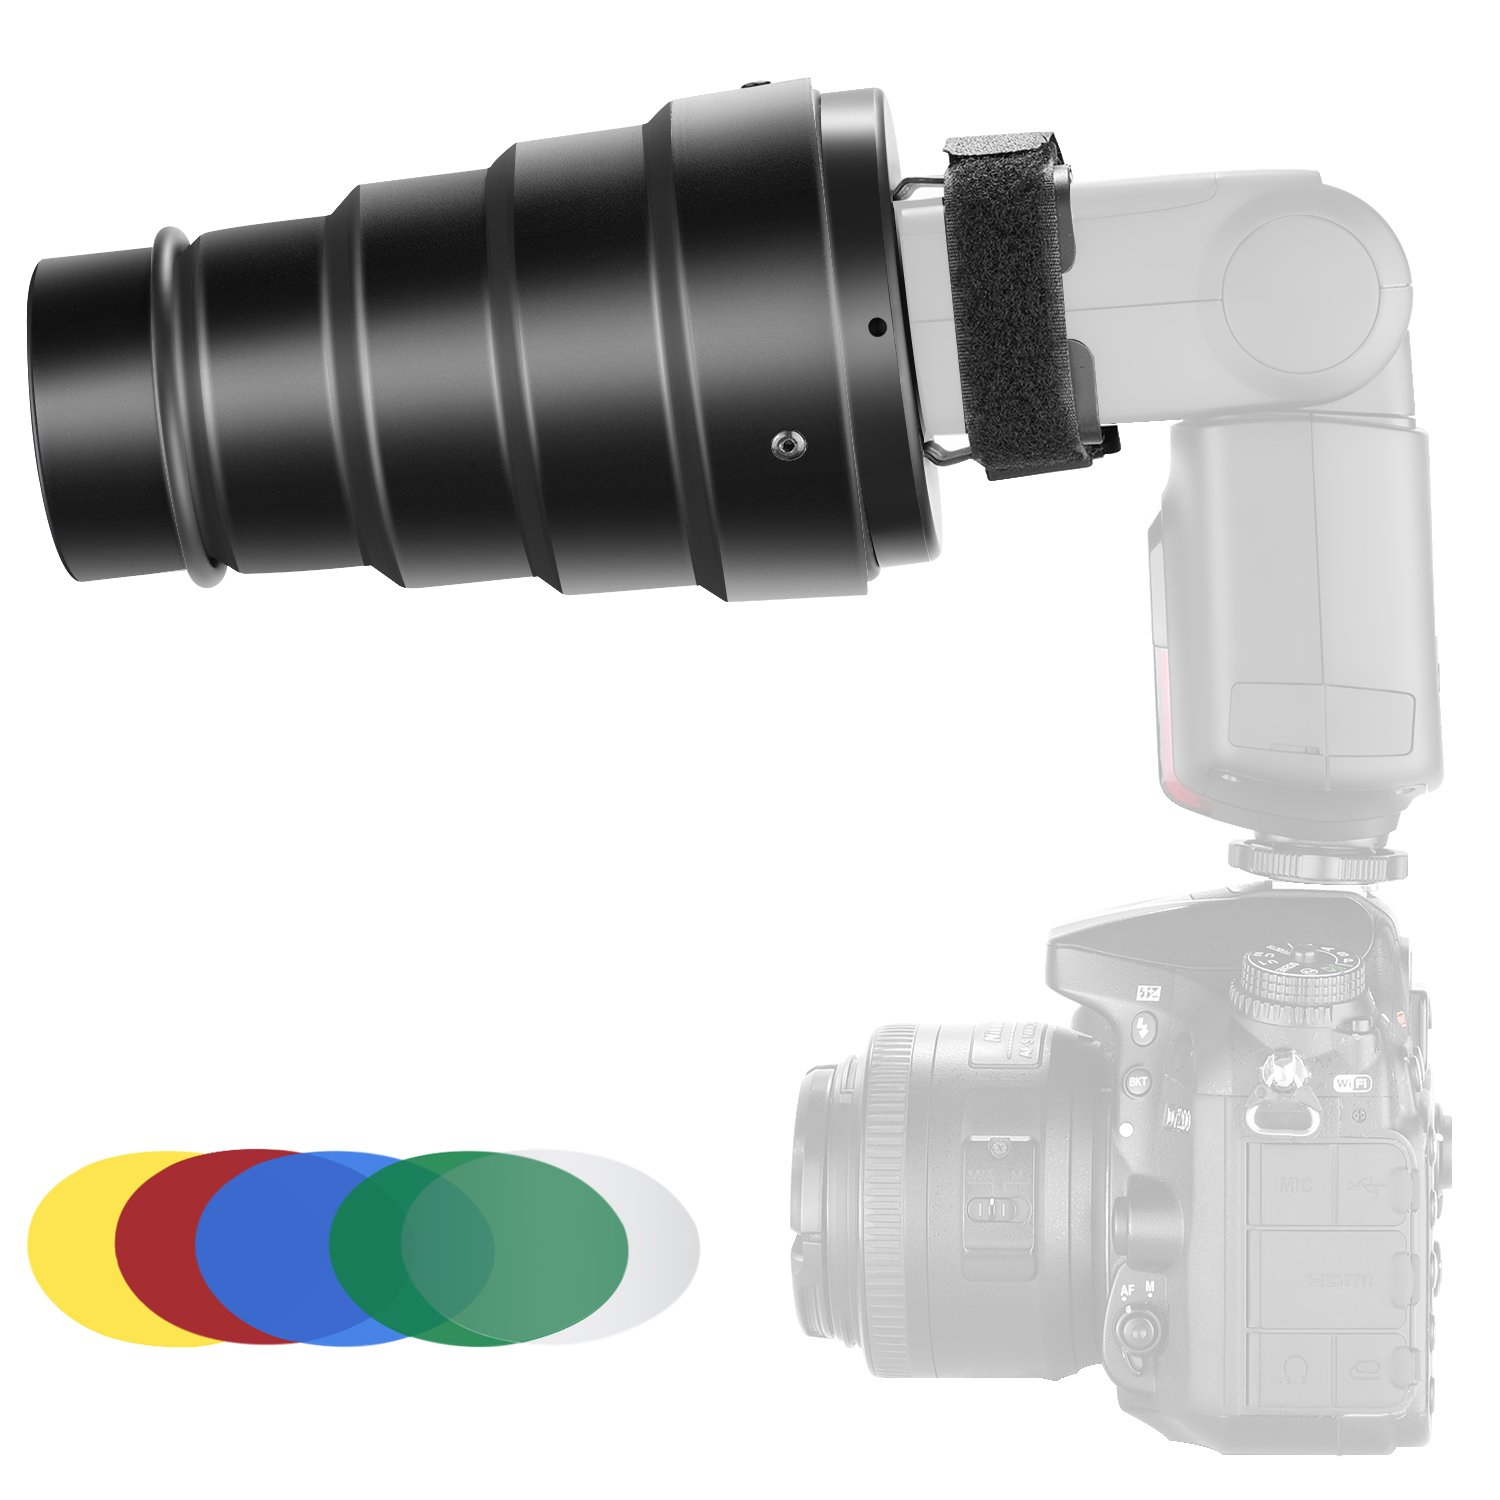 Neewer Aluminium Alloy Conical Snoot Kit with Honeycomb Grid and 5 Pieces Color Gel Filters for Canon Nikon TT560 NW561 NW562 NW565 NW620 NW630 NW680 NW670 750II NW910 NW880 Flash Speedlites by Neewer